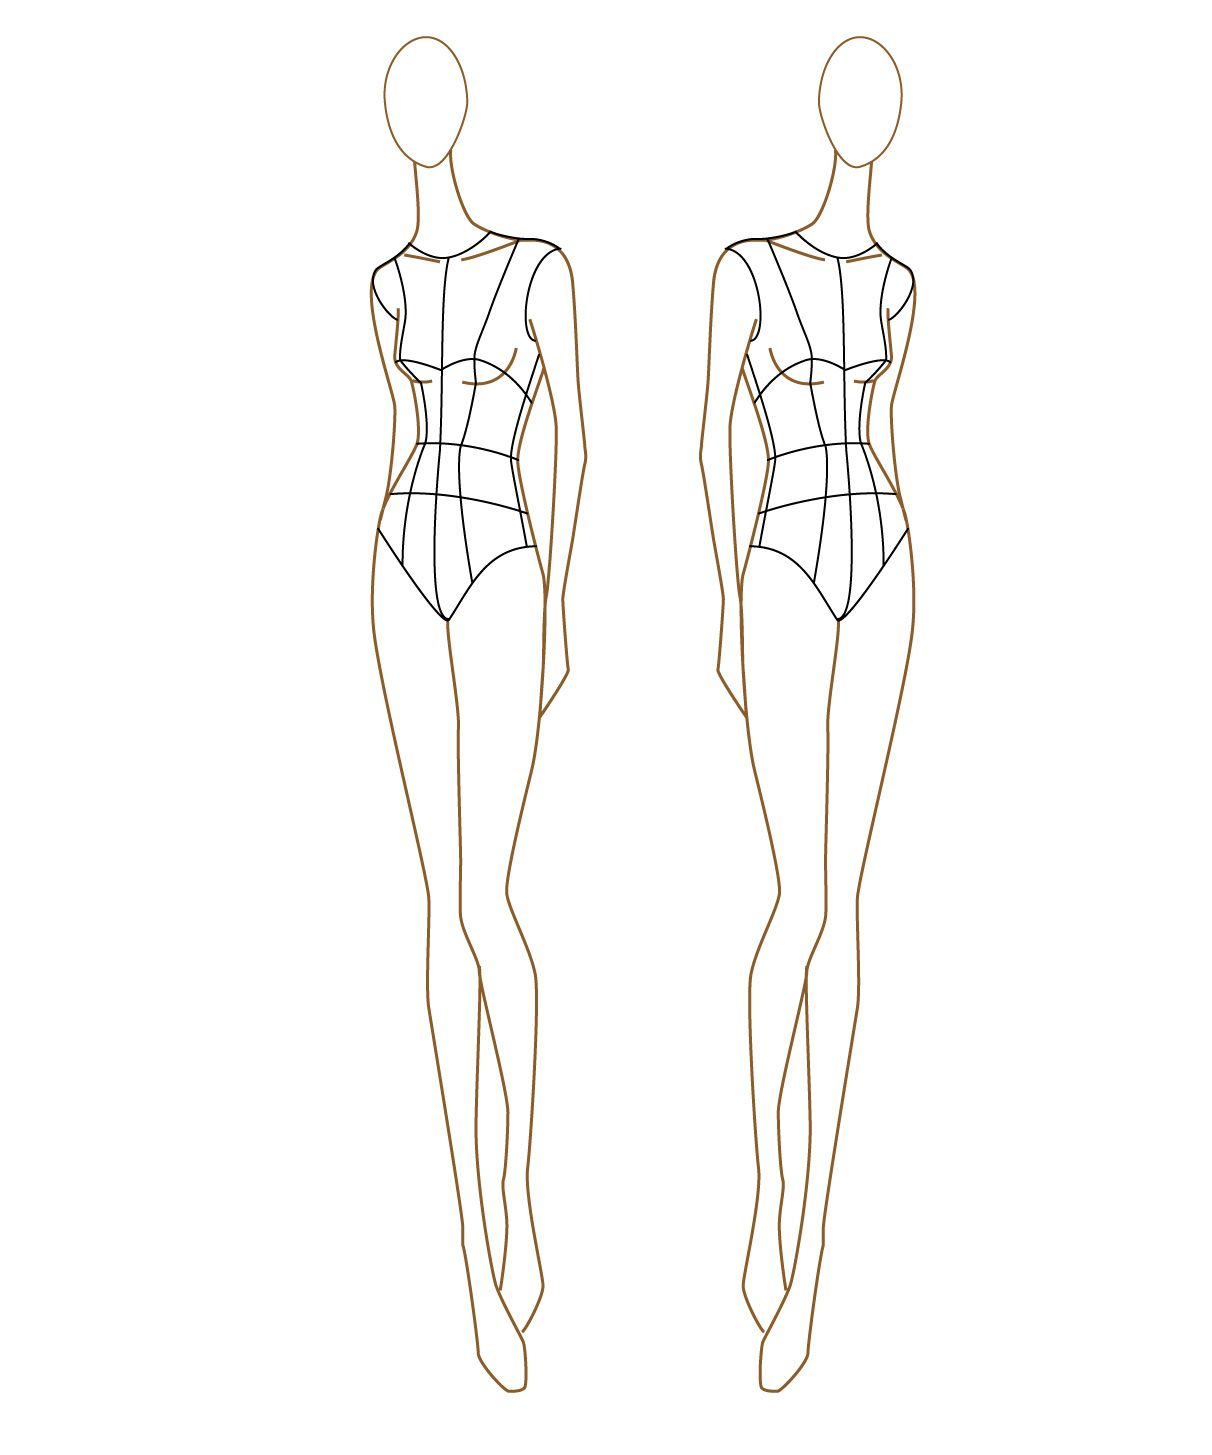 Fashion Figure Sketches Examples Of Templates